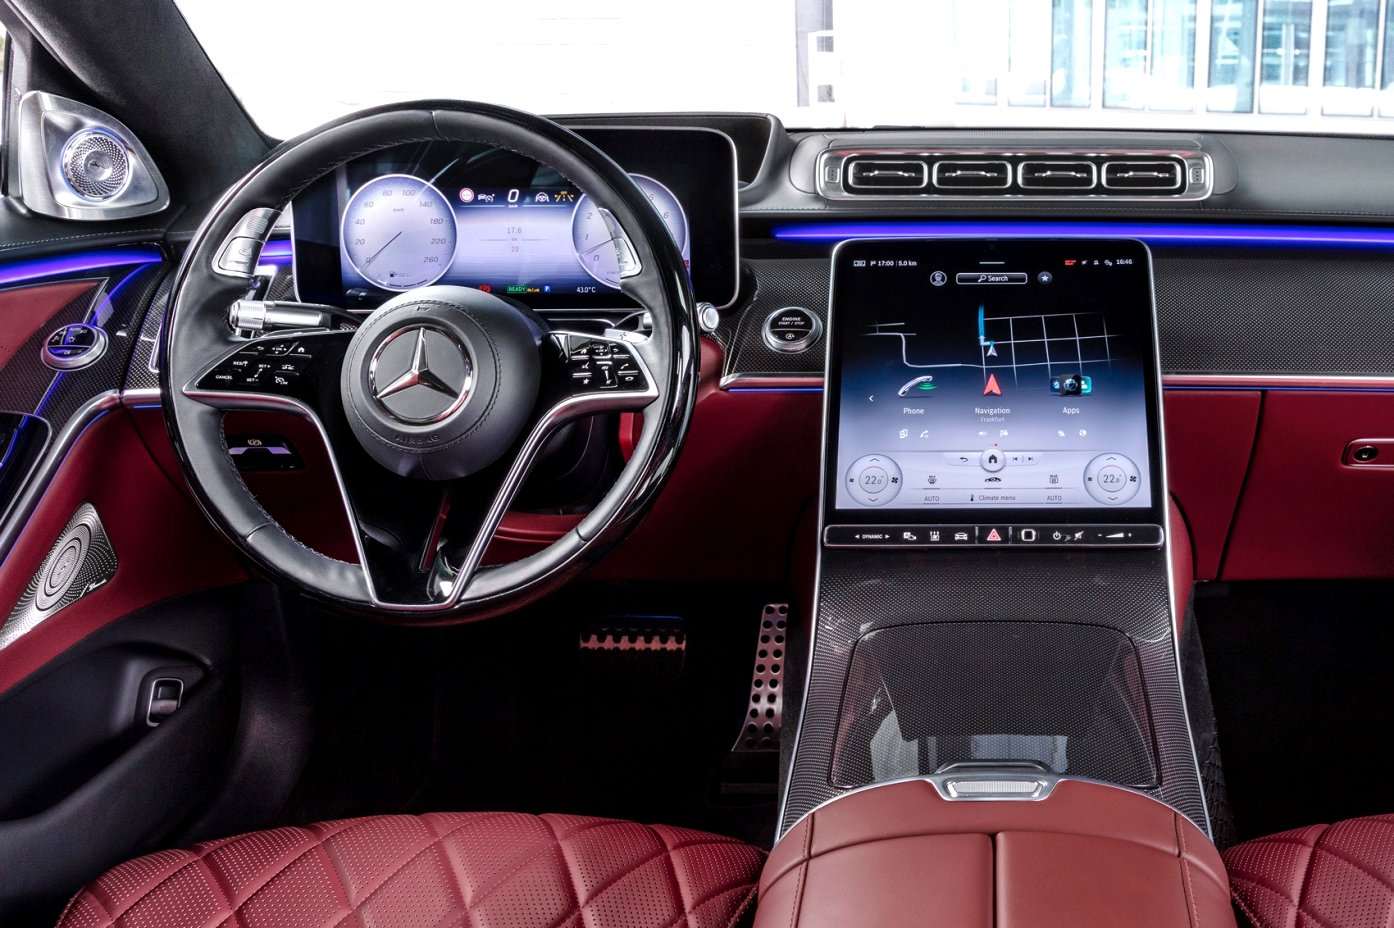 2020 mercedes a class interior Wallpaper